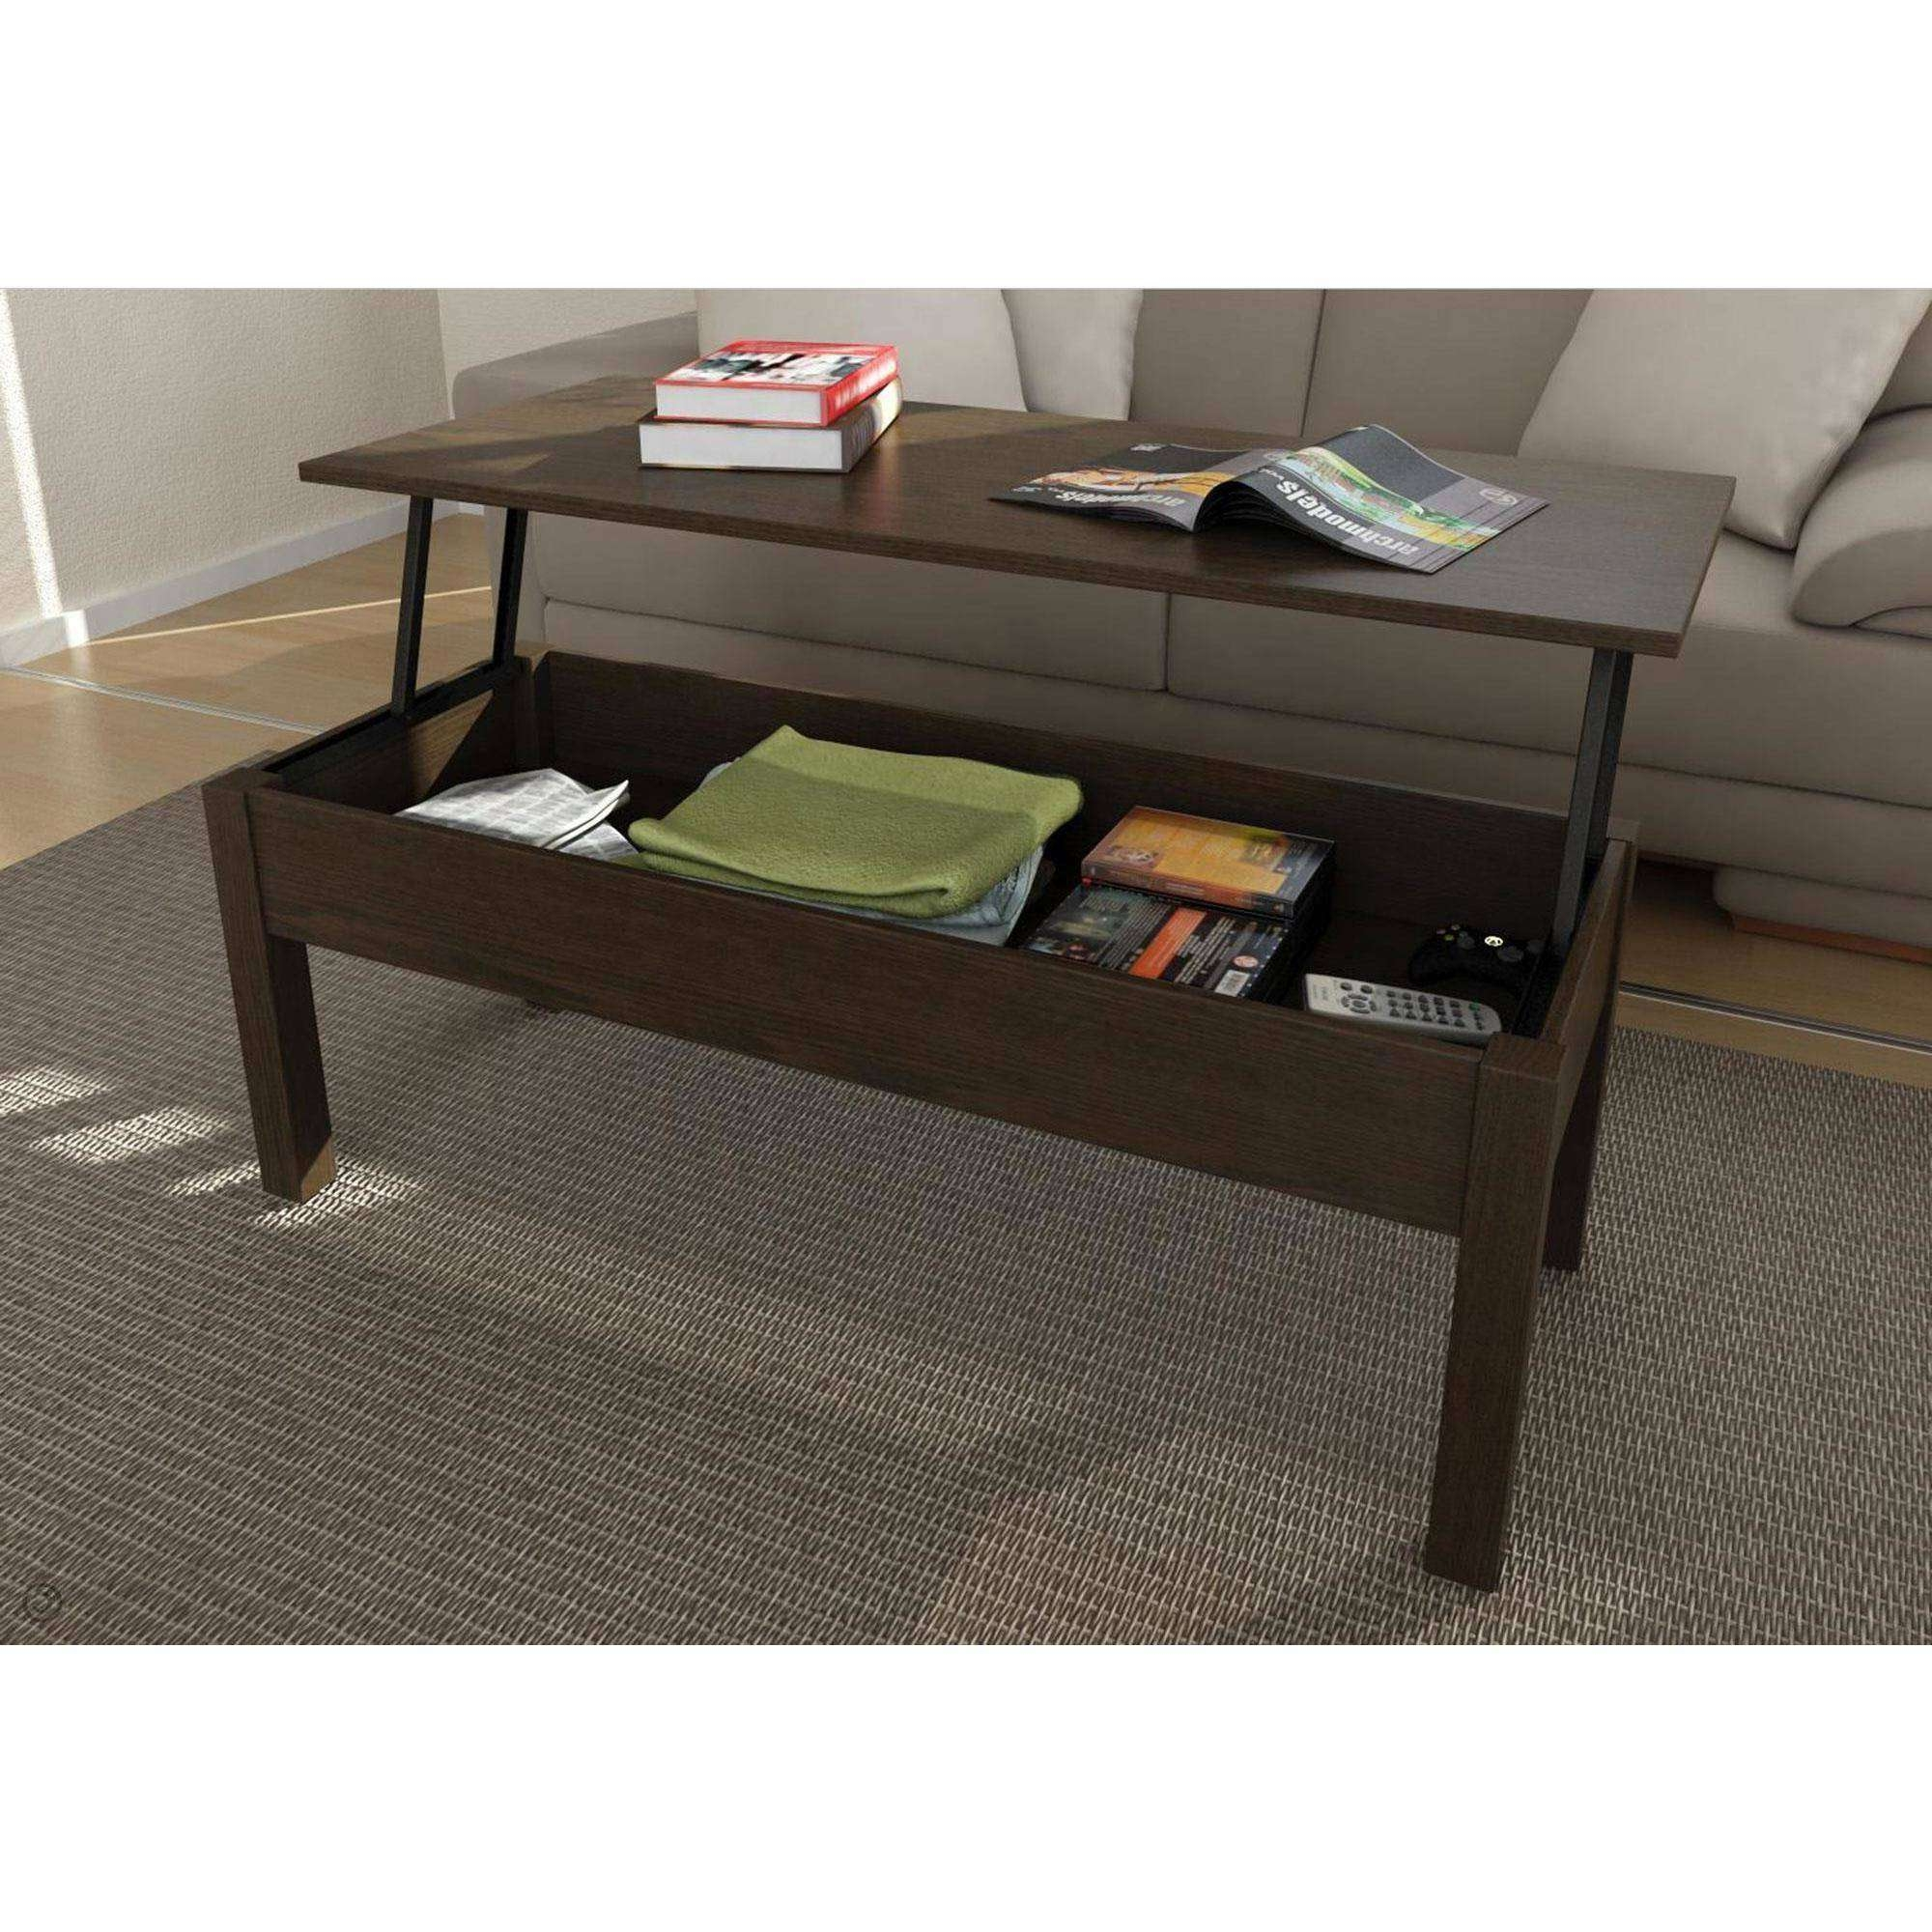 Furniture: Modern And Contemporary Design Of Espresso Coffee Table Pertaining To Most Current Coffee Tables With Shelf Underneath (View 20 of 20)